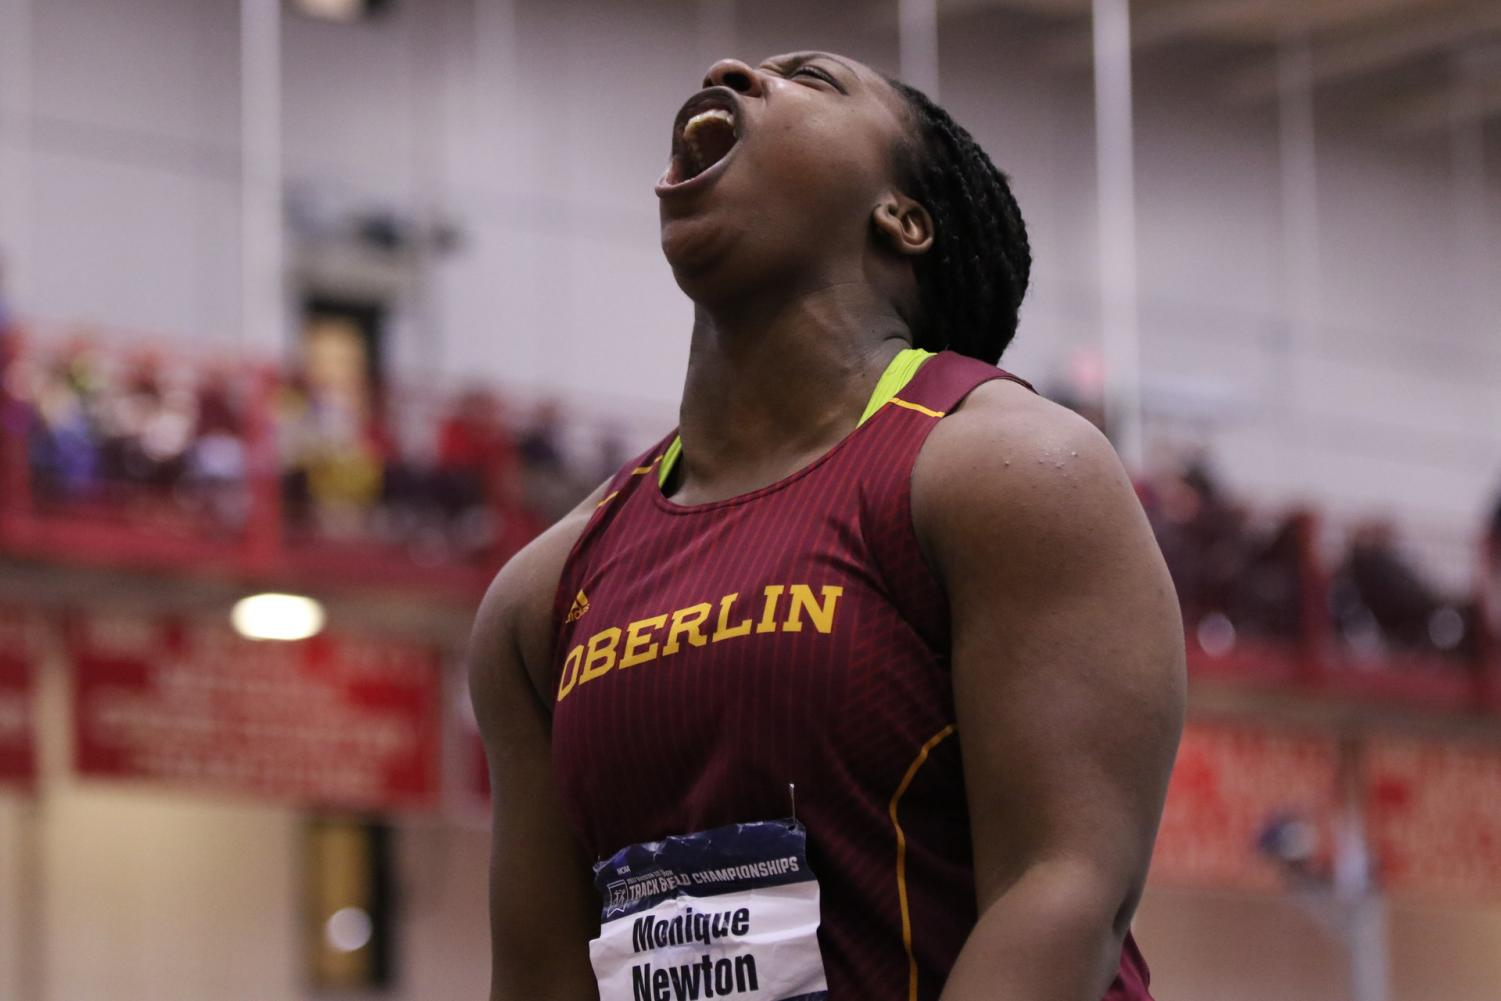 Monique Newton lets out a roar at last winter's NCAA Division III Indoor Championships. The track and field teams began their season Saturday at the Fifth-Annual Spartan Holiday Classic at Case Western Reserve University. Newton, who won the women's national championship last season, reclaimed her first-place status with two wins and earned NCAC Field Athlete of the Week.